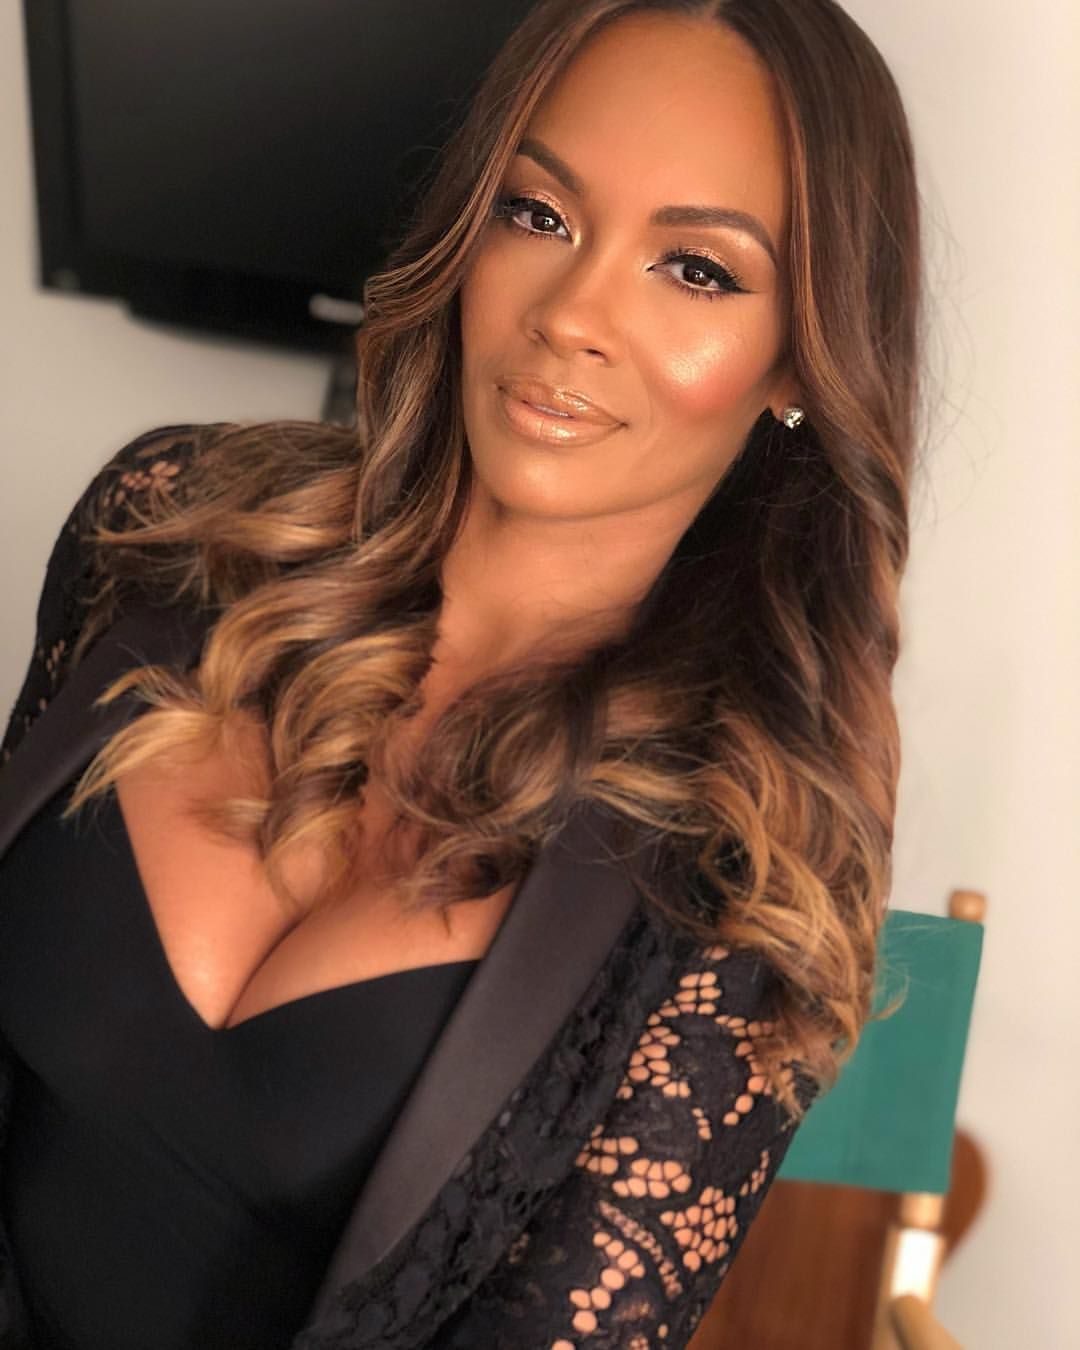 Hacked Evelyn Lozada nude photos 2019